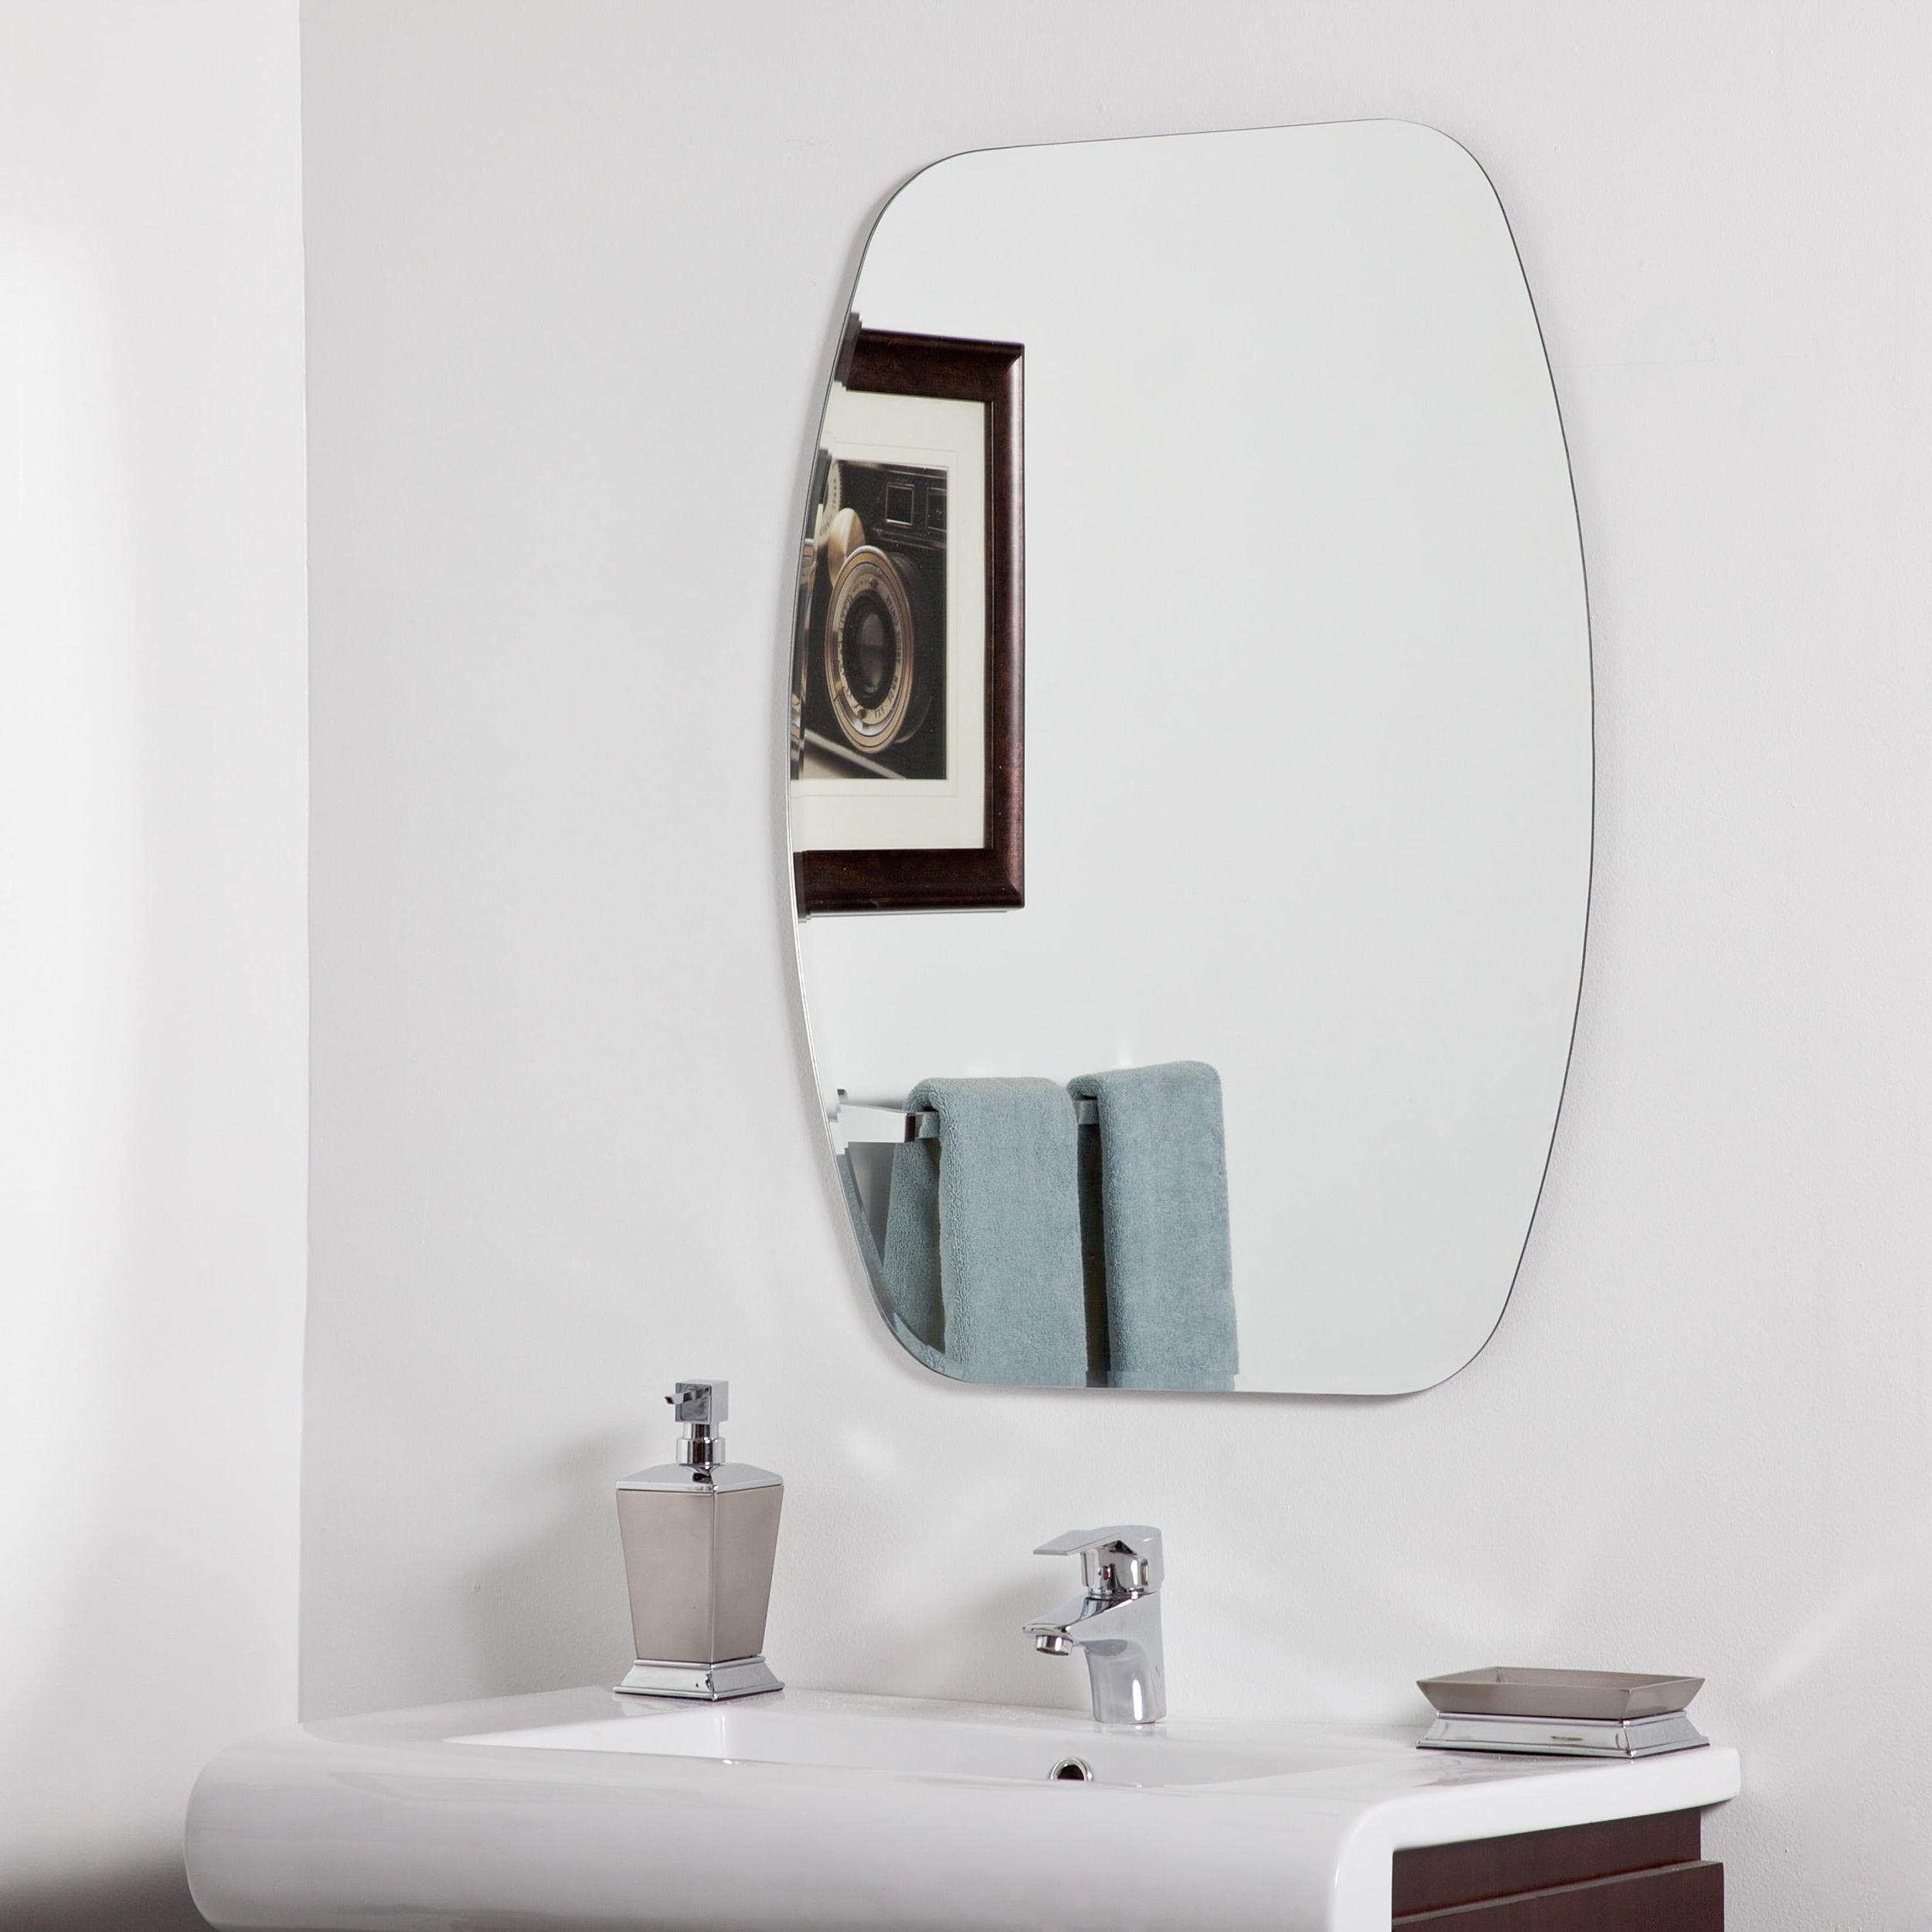 Widely Used Sydney Modern Bathroom Mirror – Silver – A/n Within Contemporary Bathroom Wall Mirrors (View 19 of 20)